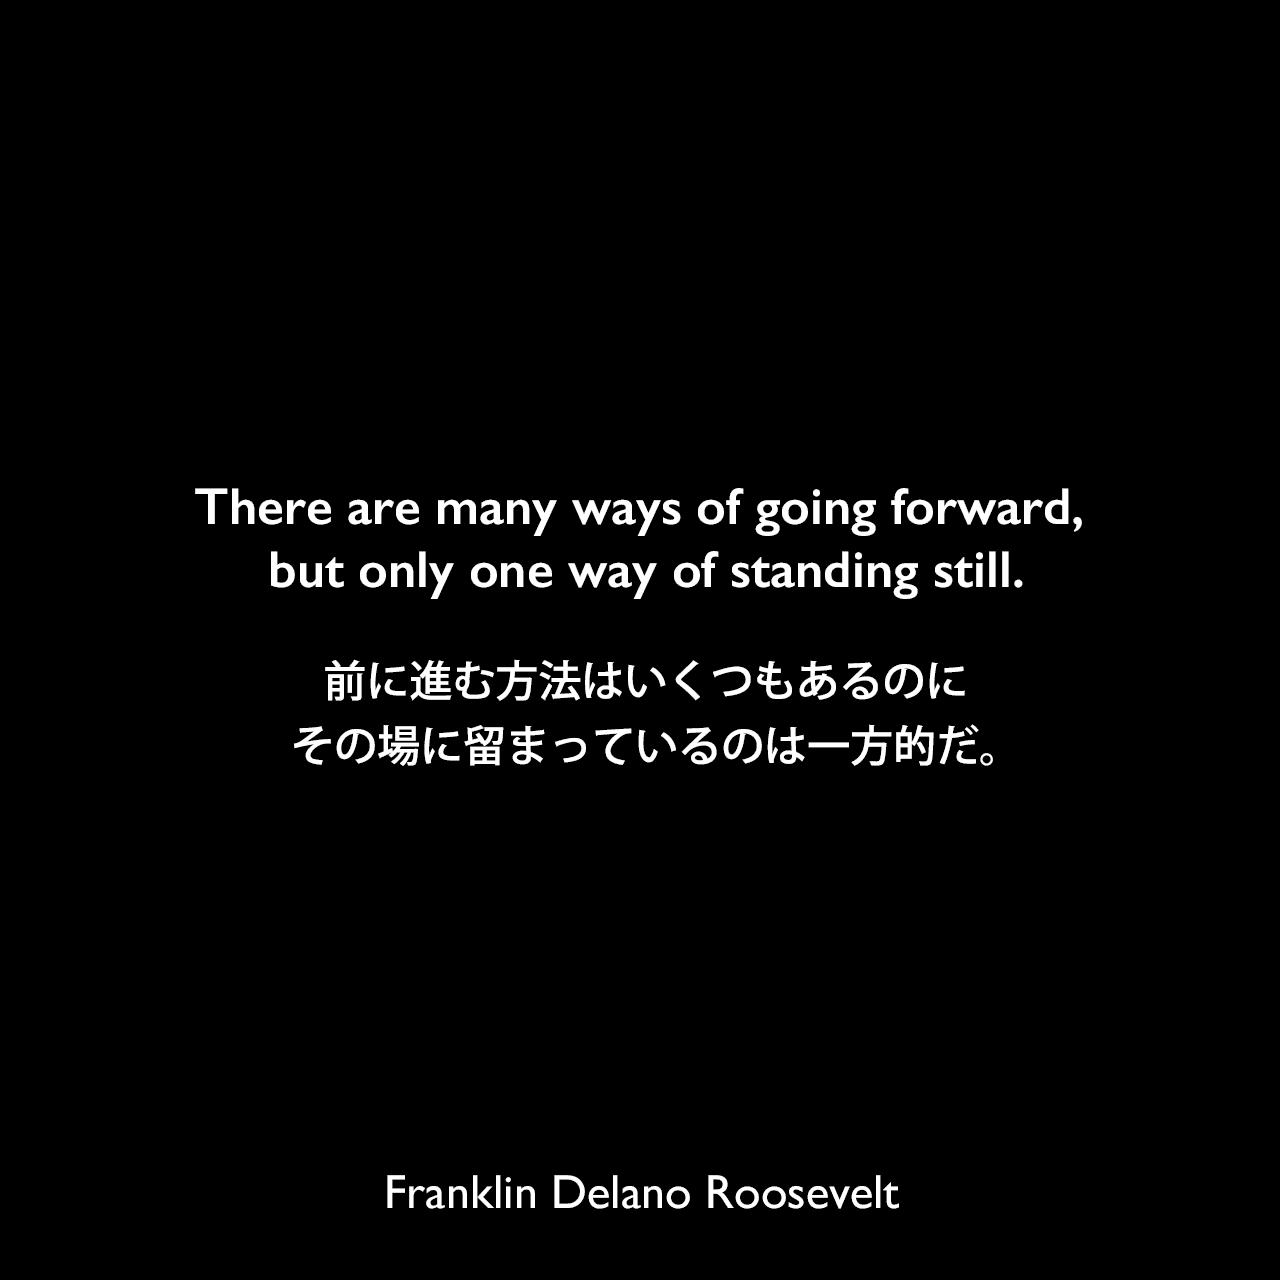 There are many ways of going forward, but only one way of standing still.前に進む方法はいくつもあるのに、その場に留まっているのは一方的だ。Franklin Delano Roosevelt